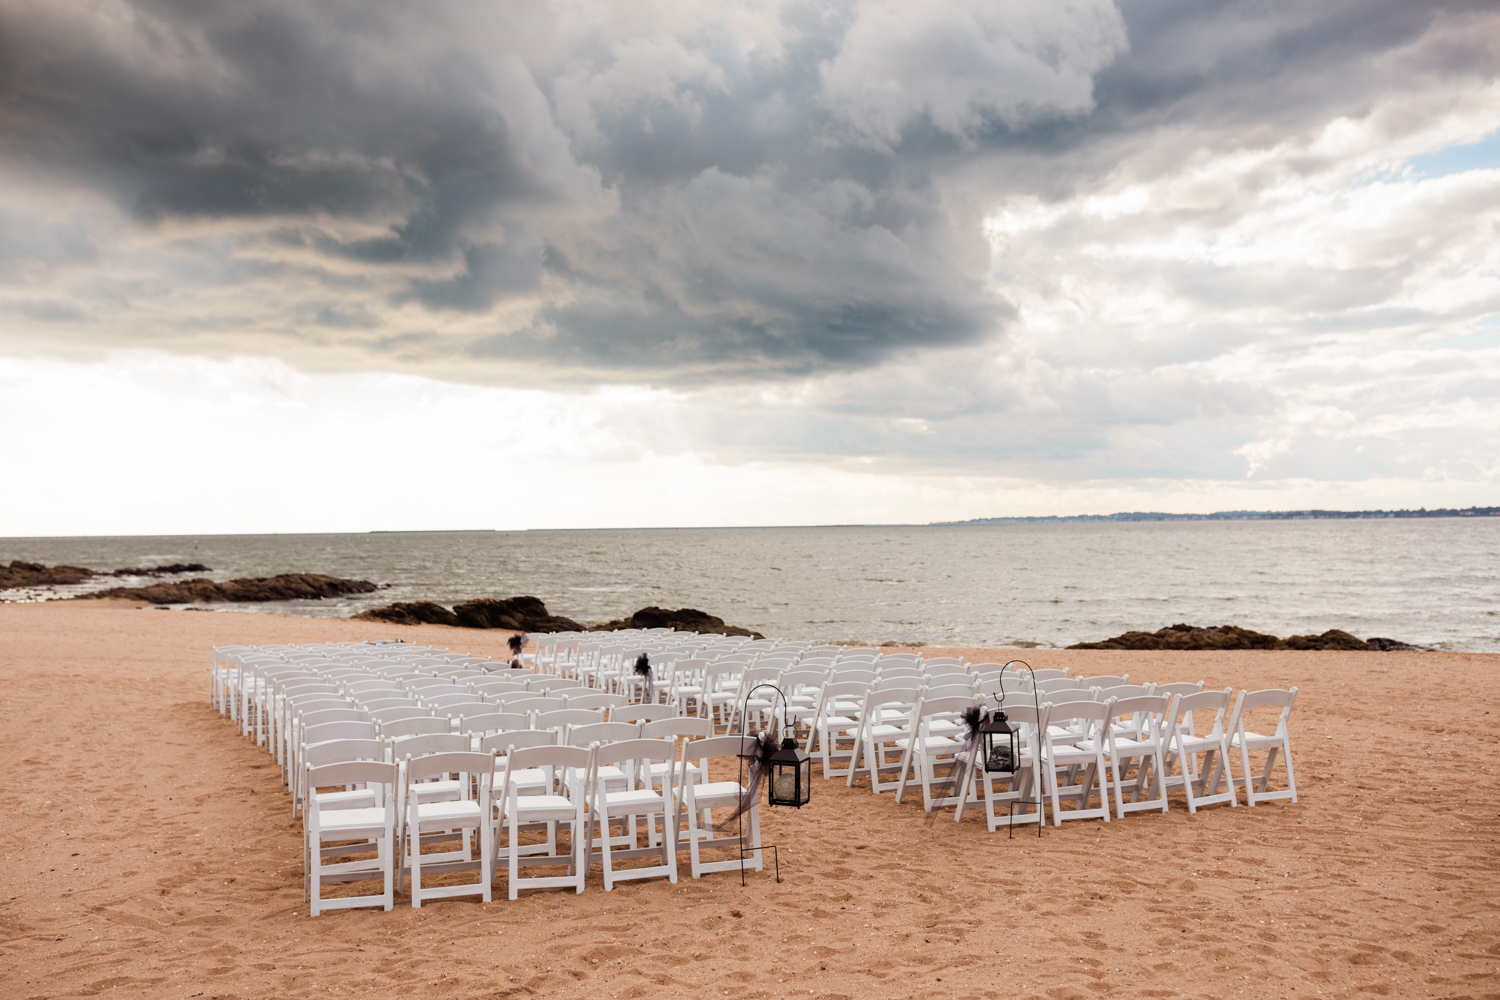 Beach wedding ceremony seating set up during storm